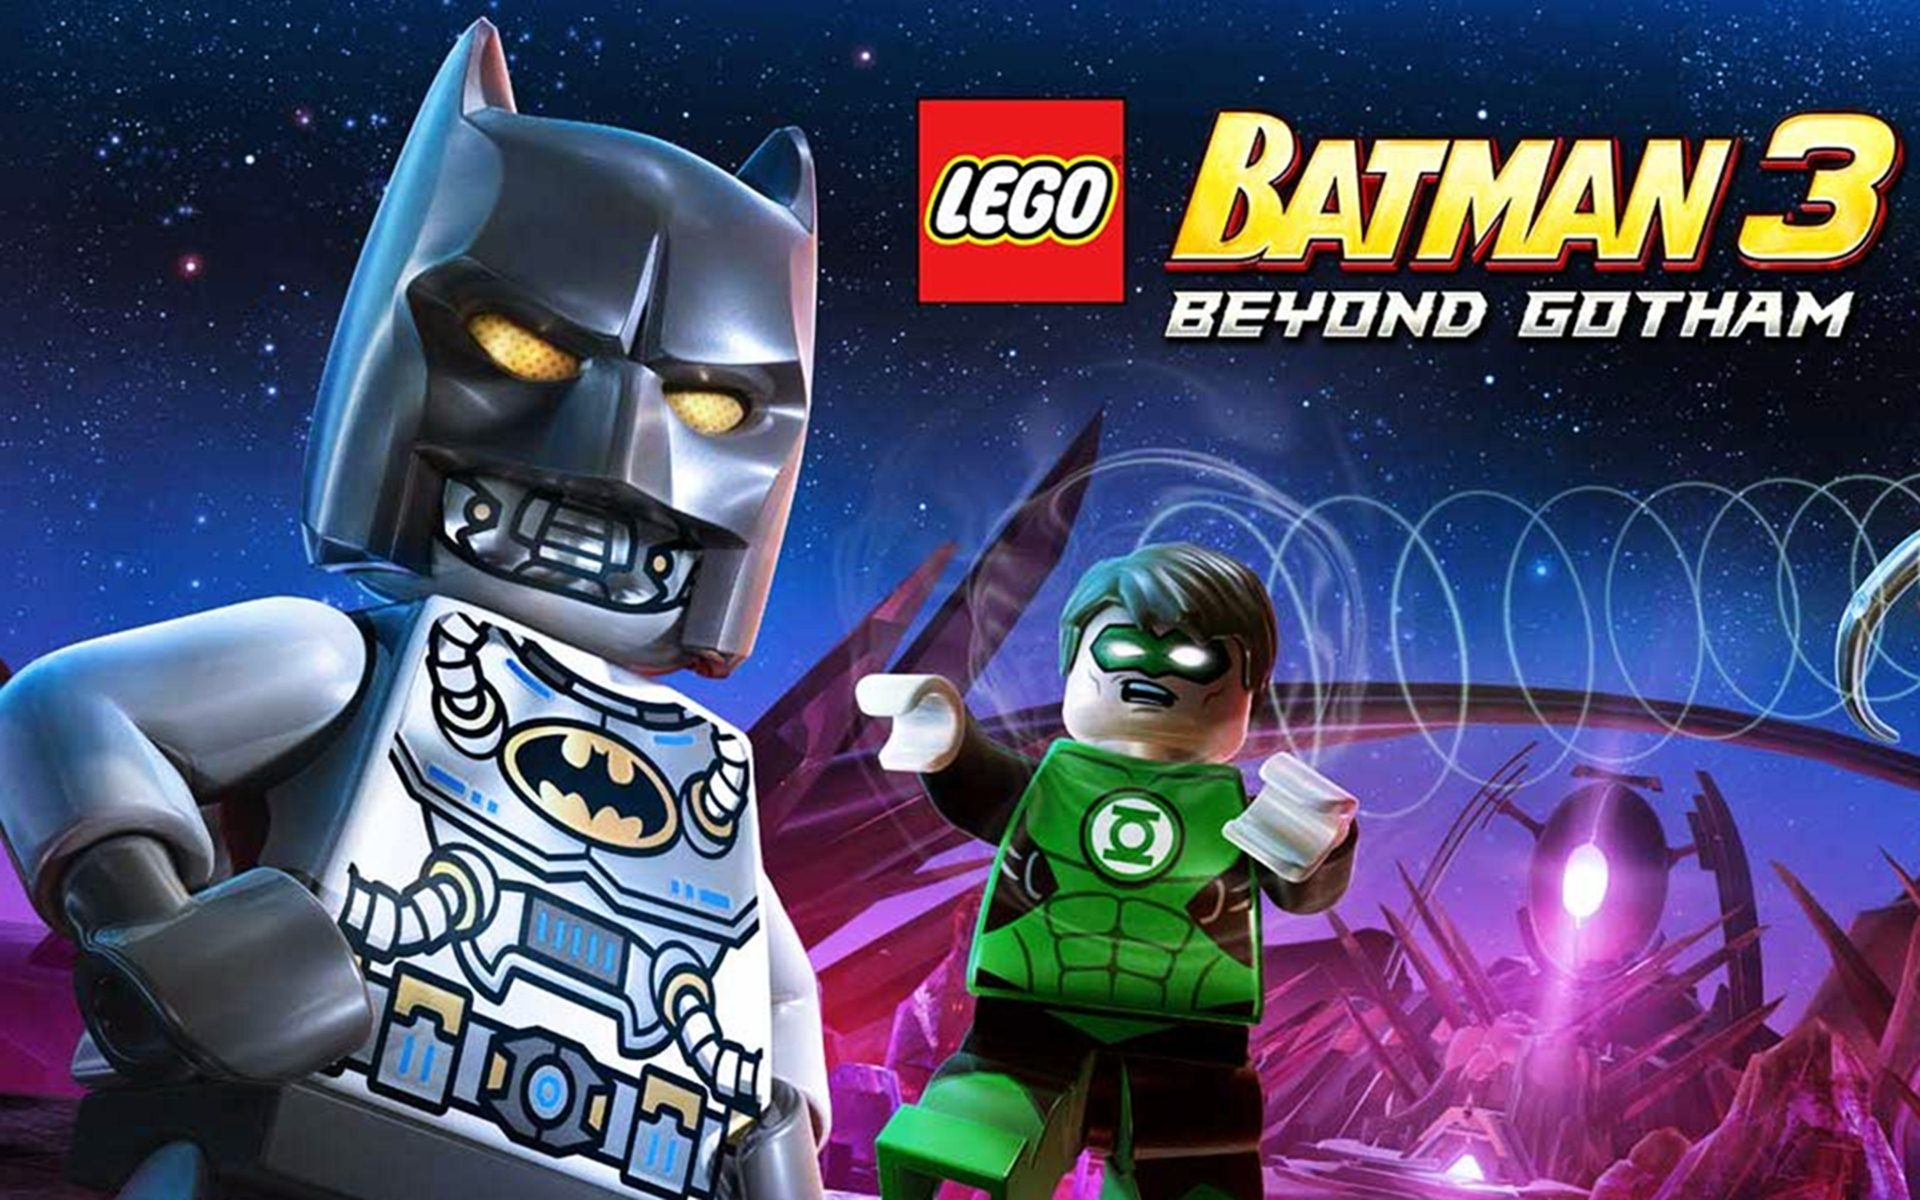 Interested in Lego Batman 3: Beyond Gotham Cheat Codes? Lego Batman 3: Beyond Gotham came out for the PS4 and other platforms in 2014. As a result, interested individuals should have no problems finding out information about its cheats and its other content.